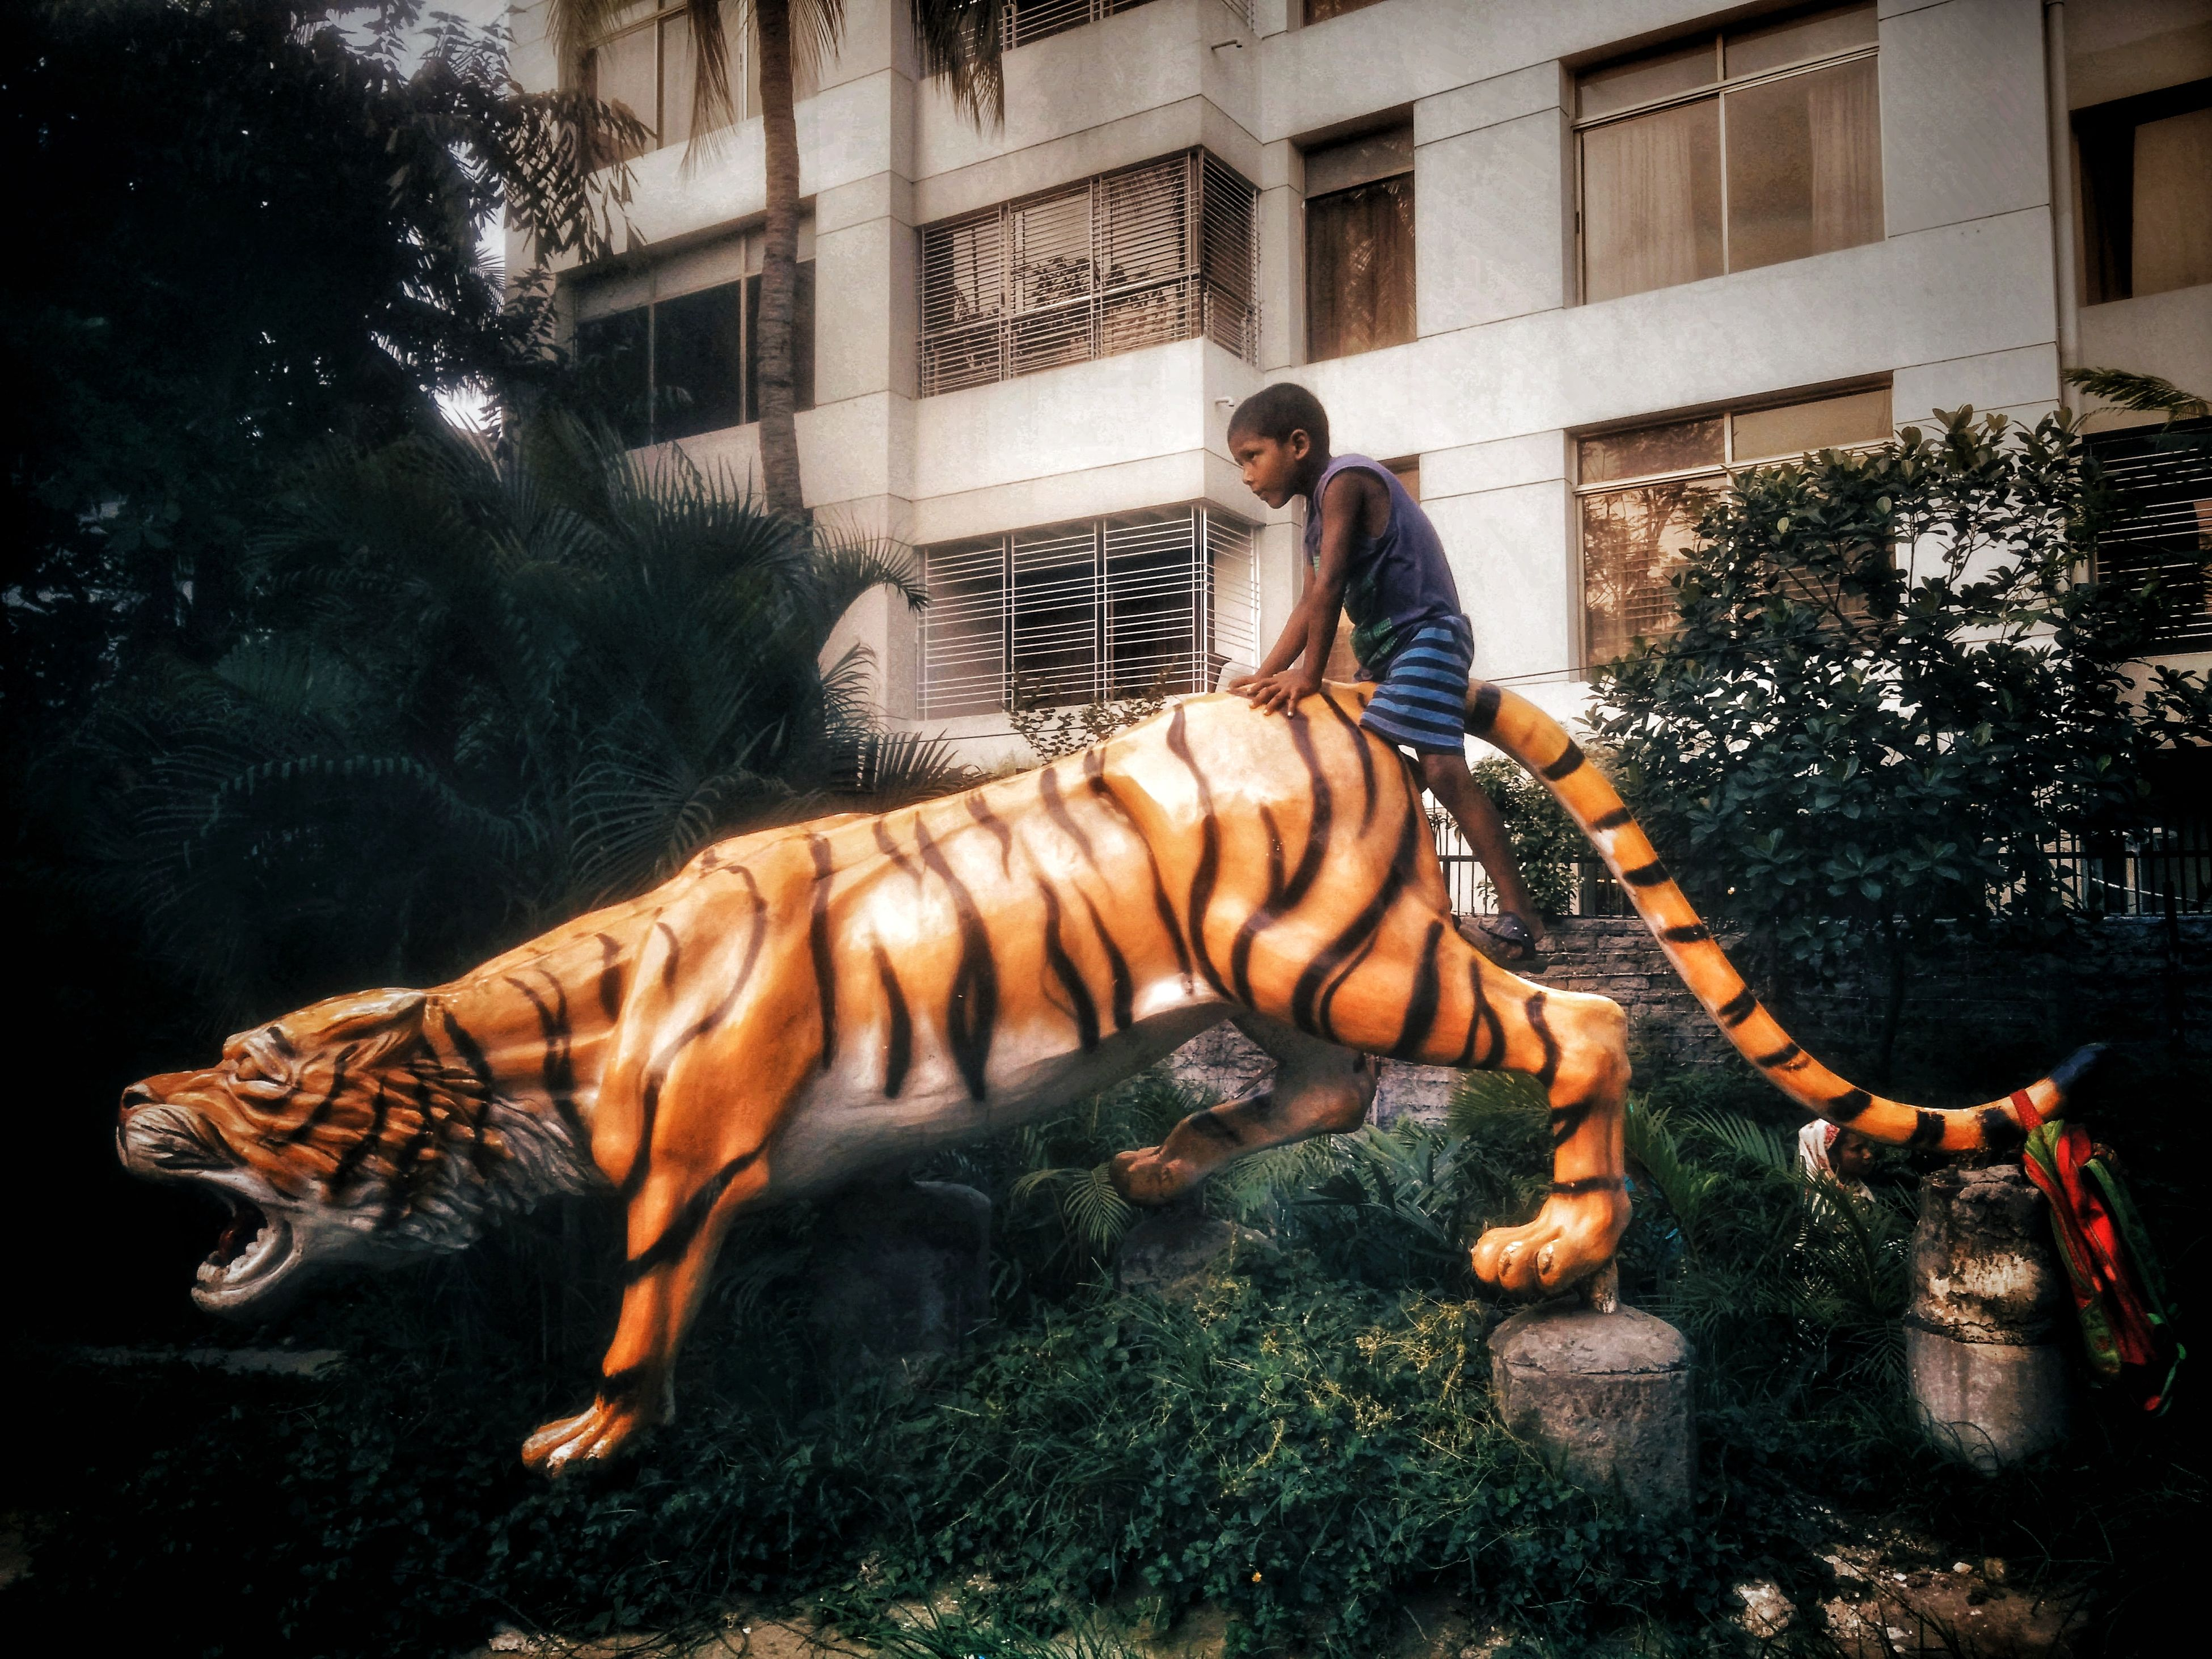 animal themes, one animal, full length, tiger, real people, one person, outdoors, lifestyles, leisure activity, mammal, domestic animals, day, architecture, building exterior, young adult, zebra, pets, nature, people